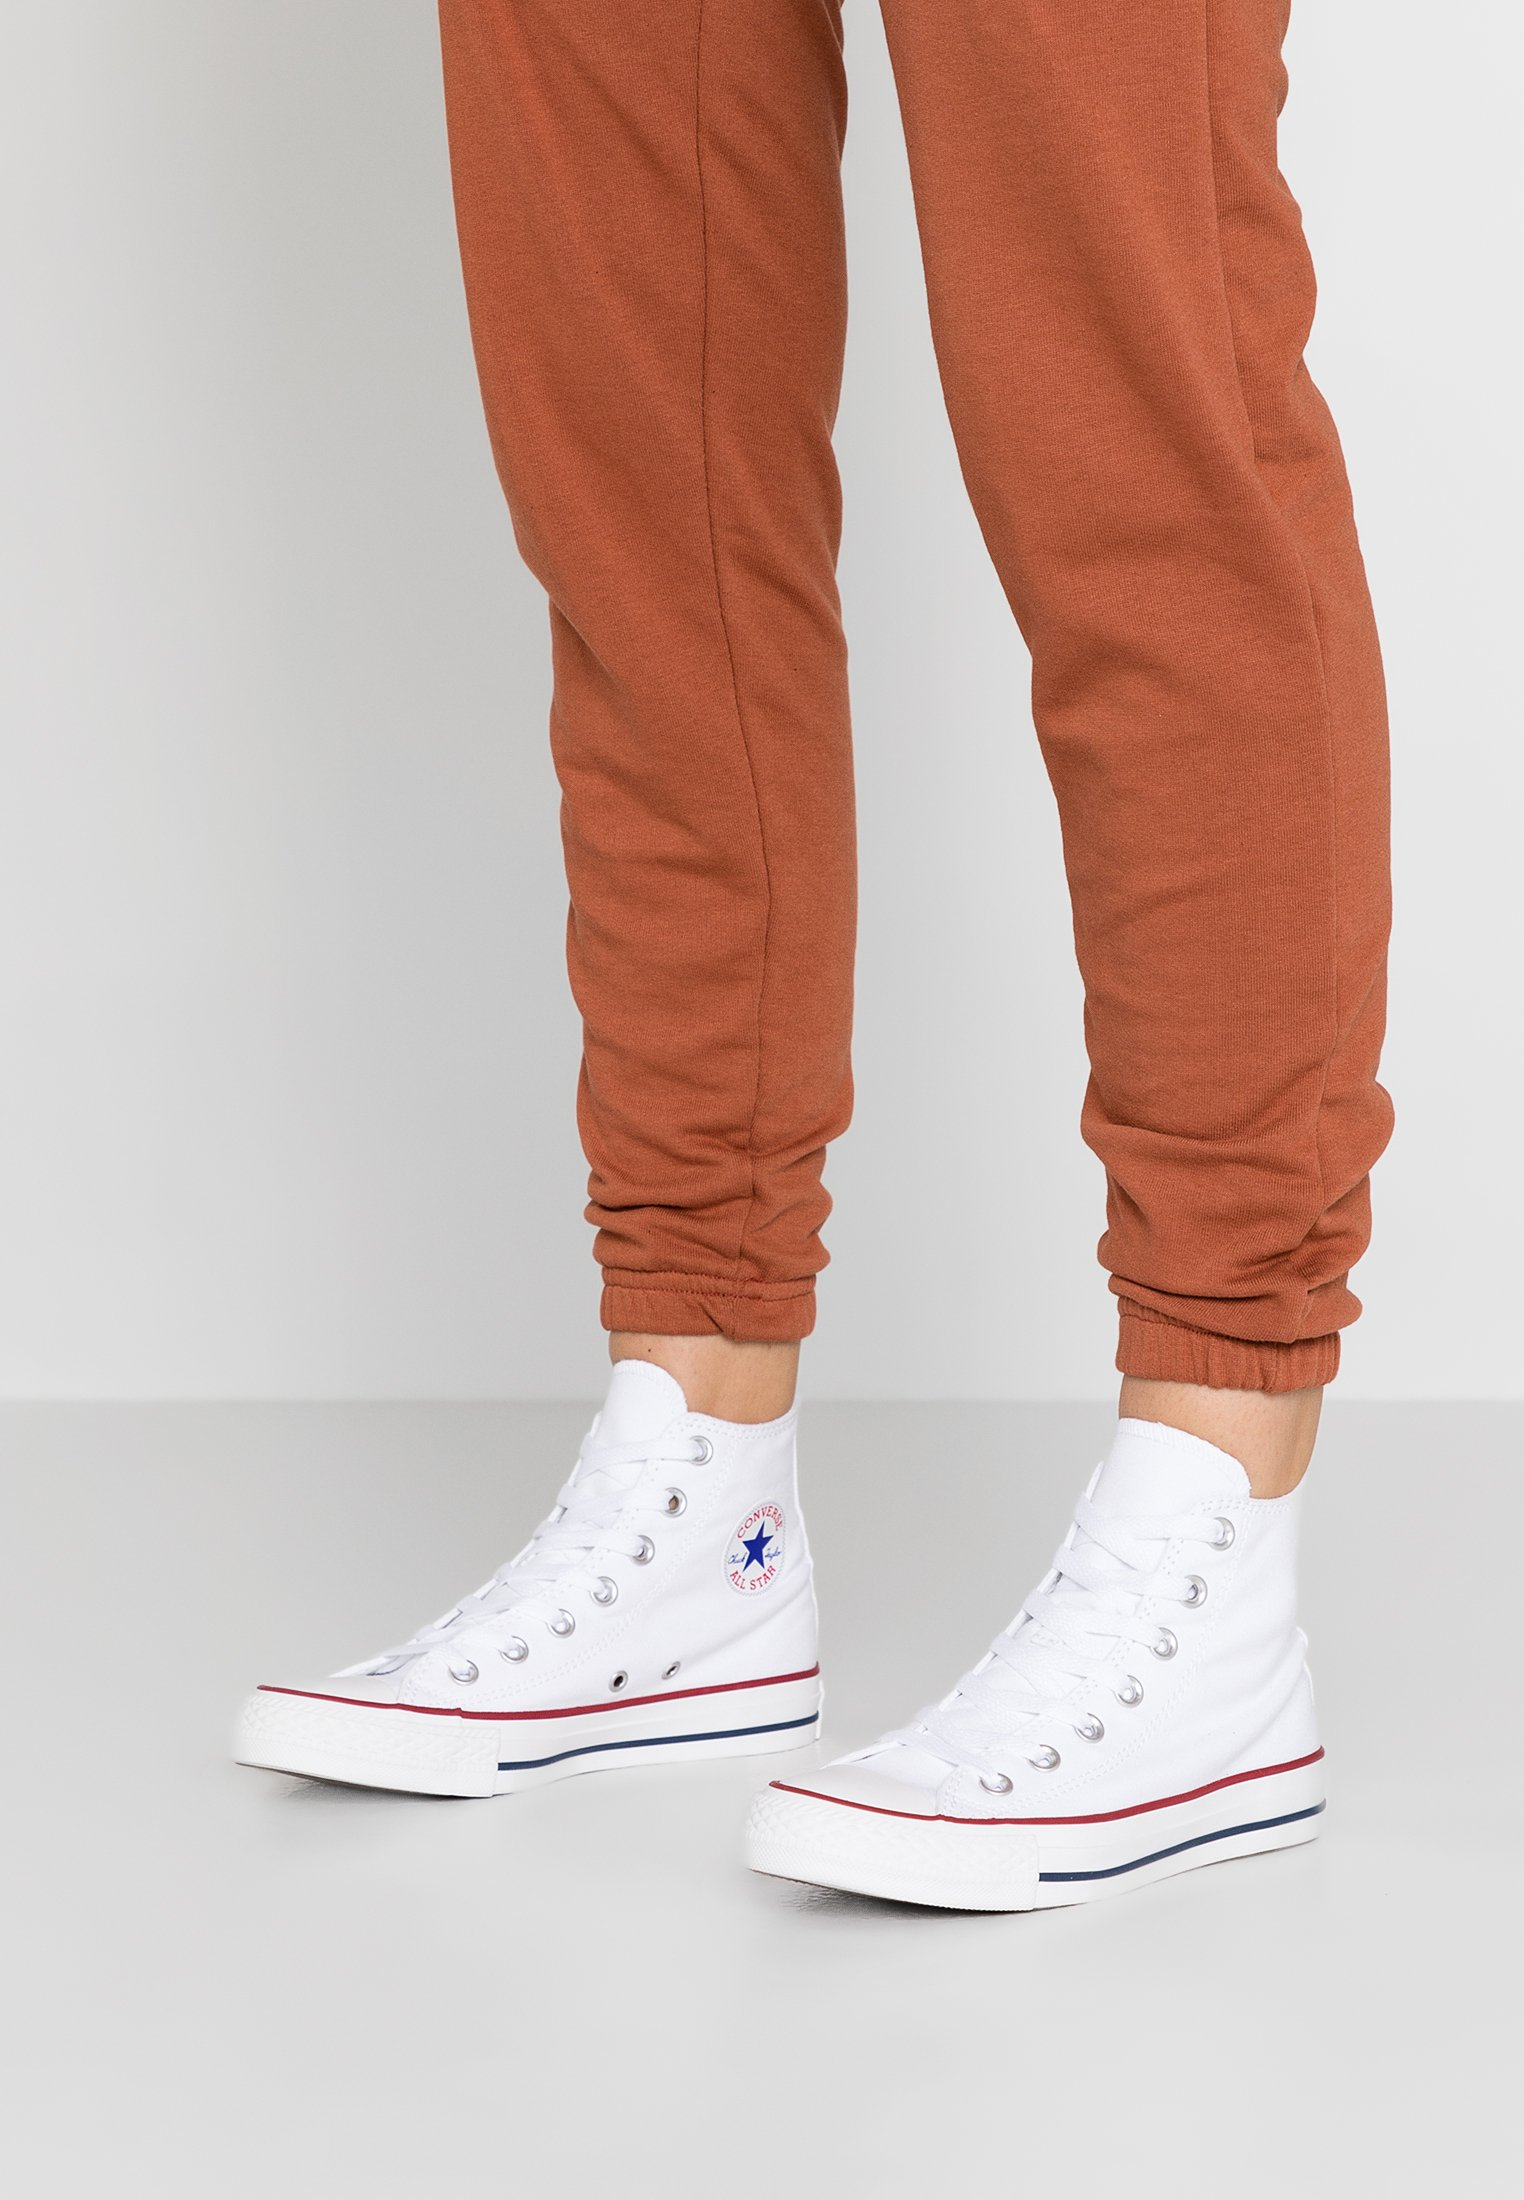 Converse HIBaskets STAR montantes ALL white TAYLOR CHUCK yv8nP0wOmN